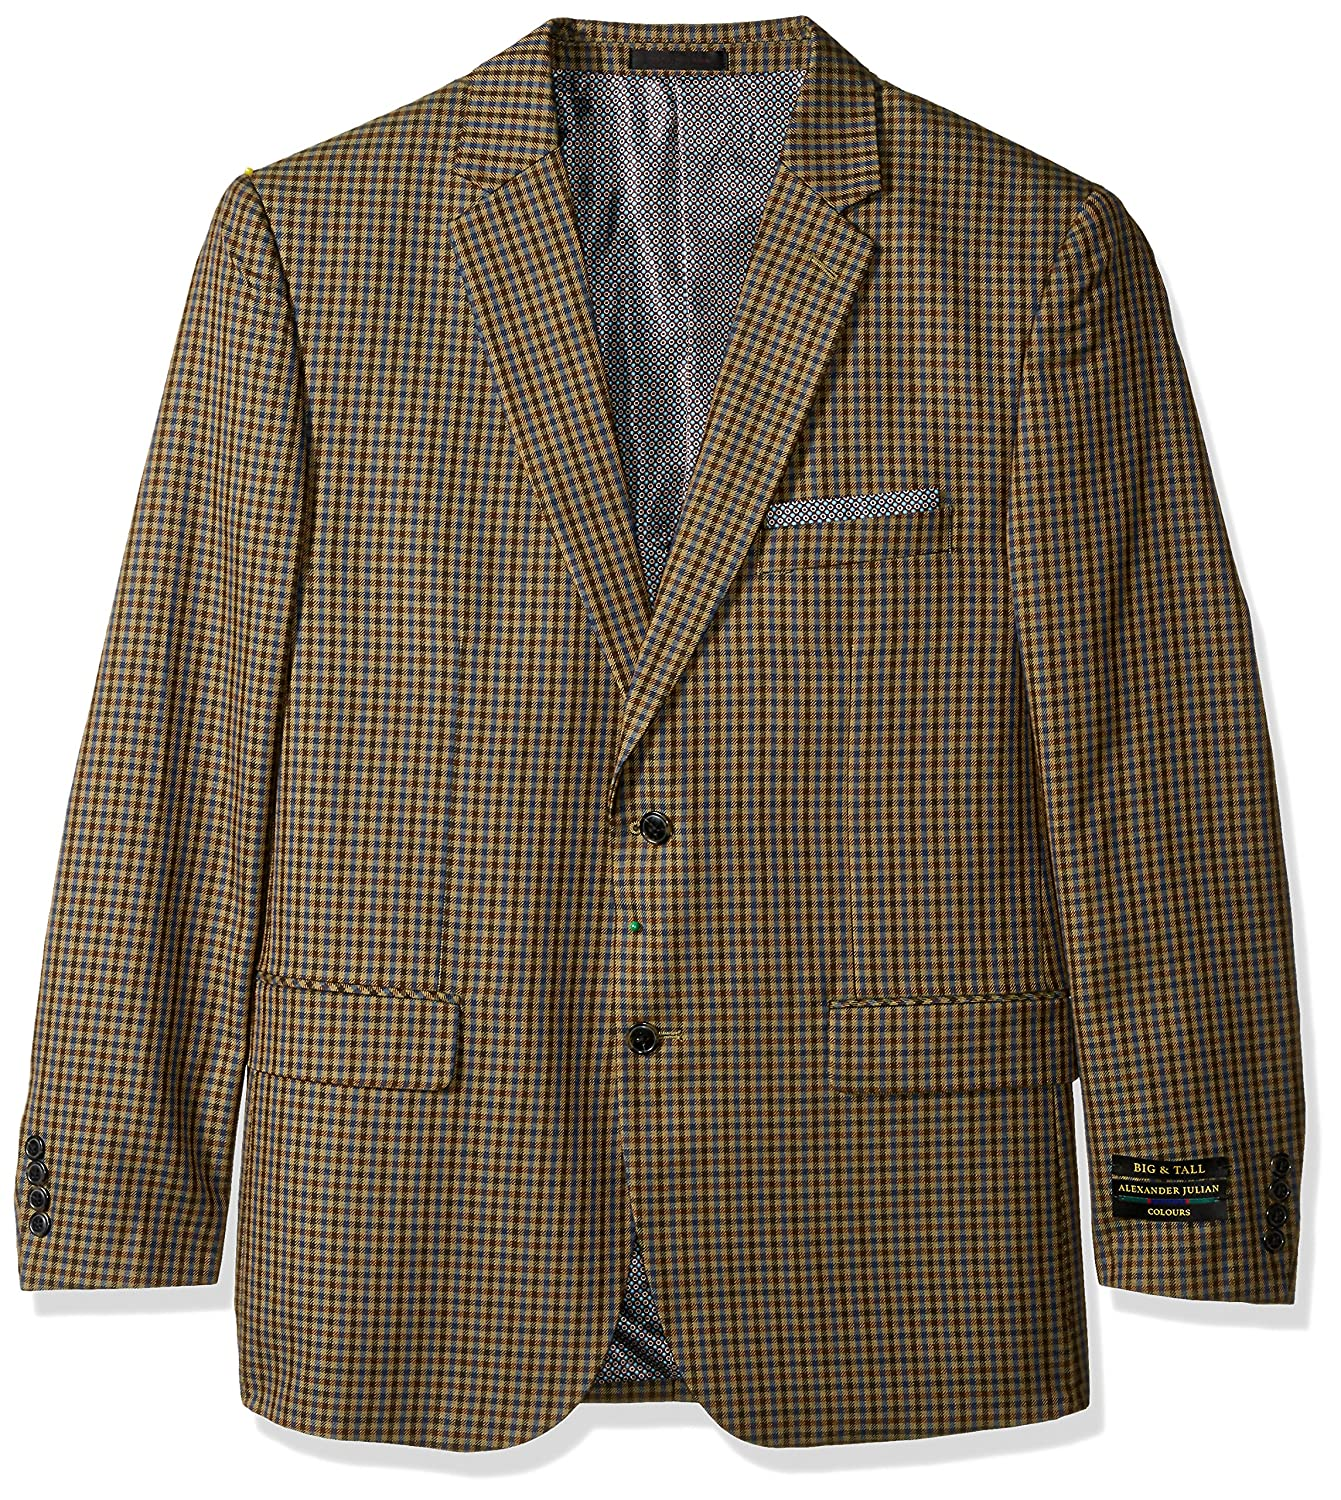 Alexander Julian Colours Men's Big & Tall Single Breasted Modern Fit Check Sportcoat Alexander Julian Child Code